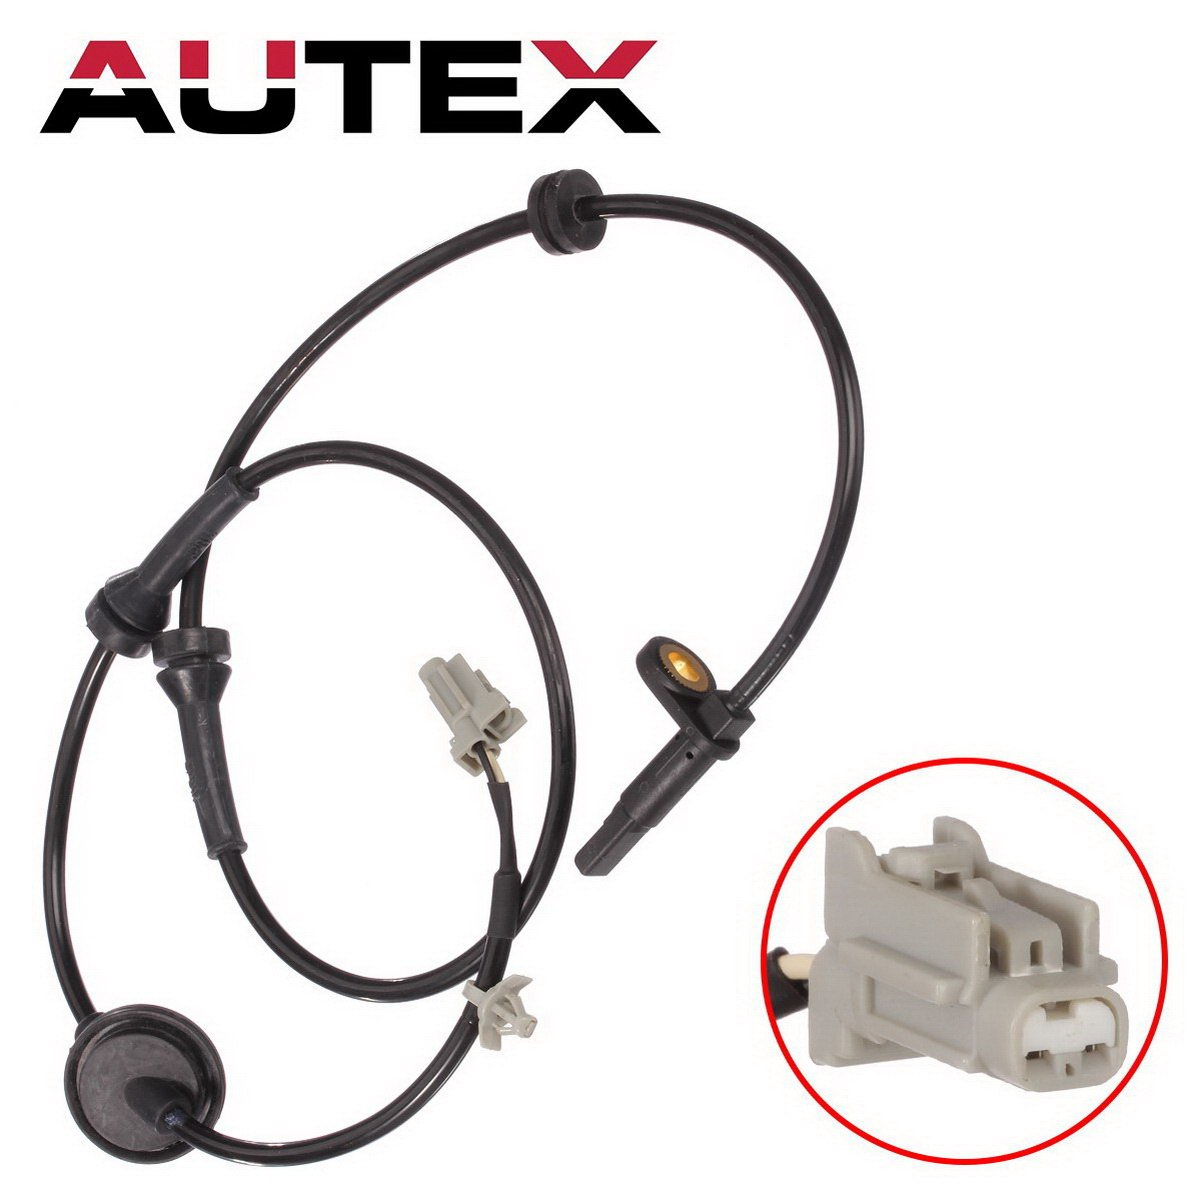 AUTEX 1pc ABS Wheel Speed Sensor ABS Sensor Right Front Passenger Side ALS286 47910-CA000 compatible with 2004 2005 2006 2007 2008 Nissan Murano 4-Door 3.5L 2004 05 06 07 08 Nissan Murano 4-Door 3.5L PartsSquare